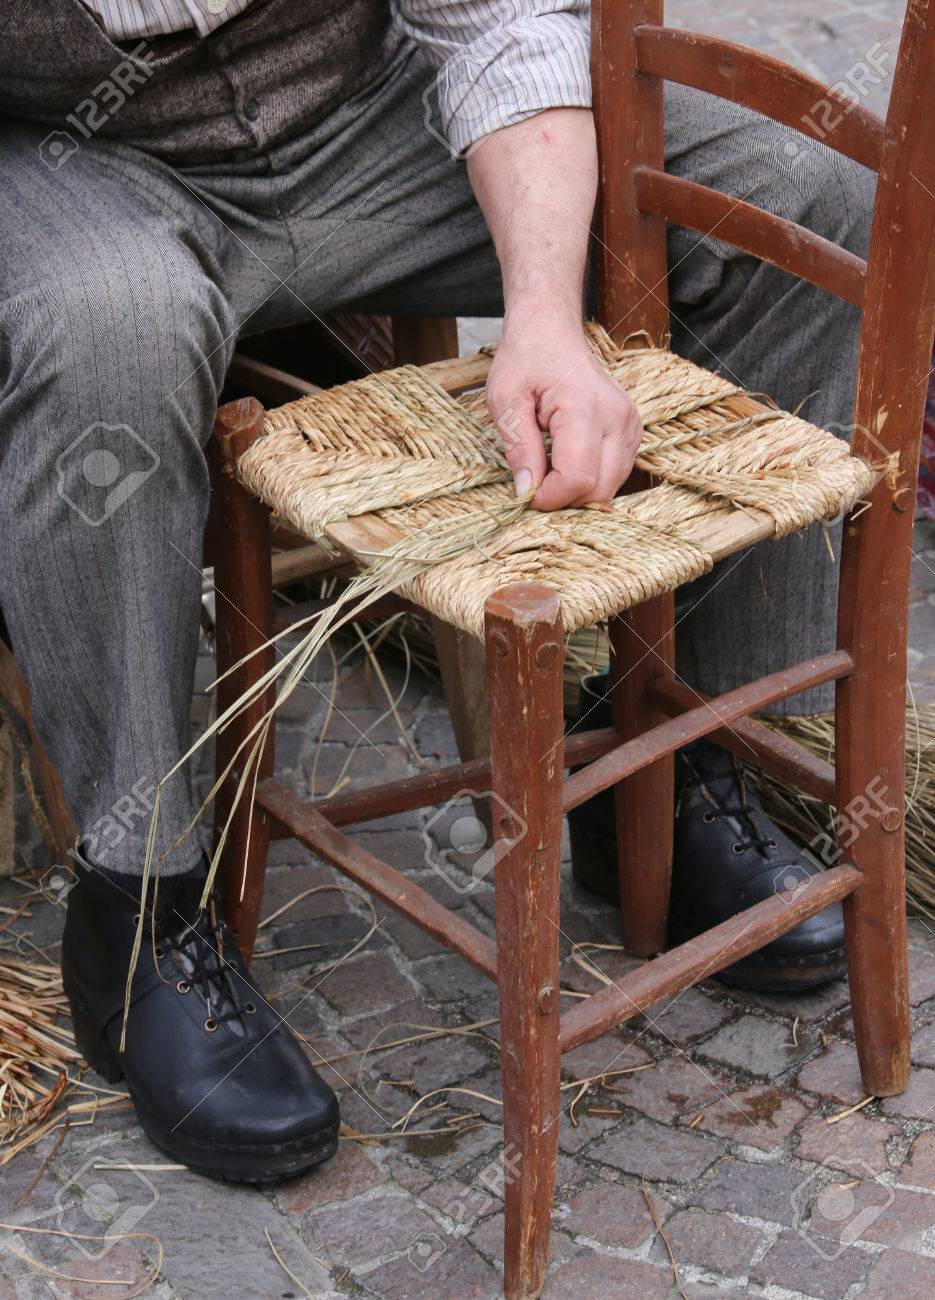 Senior Mender Of Chairs While With Straw Shelters The Old Wooden Stock Photo Picture And Royalty Free Image Image 58956497